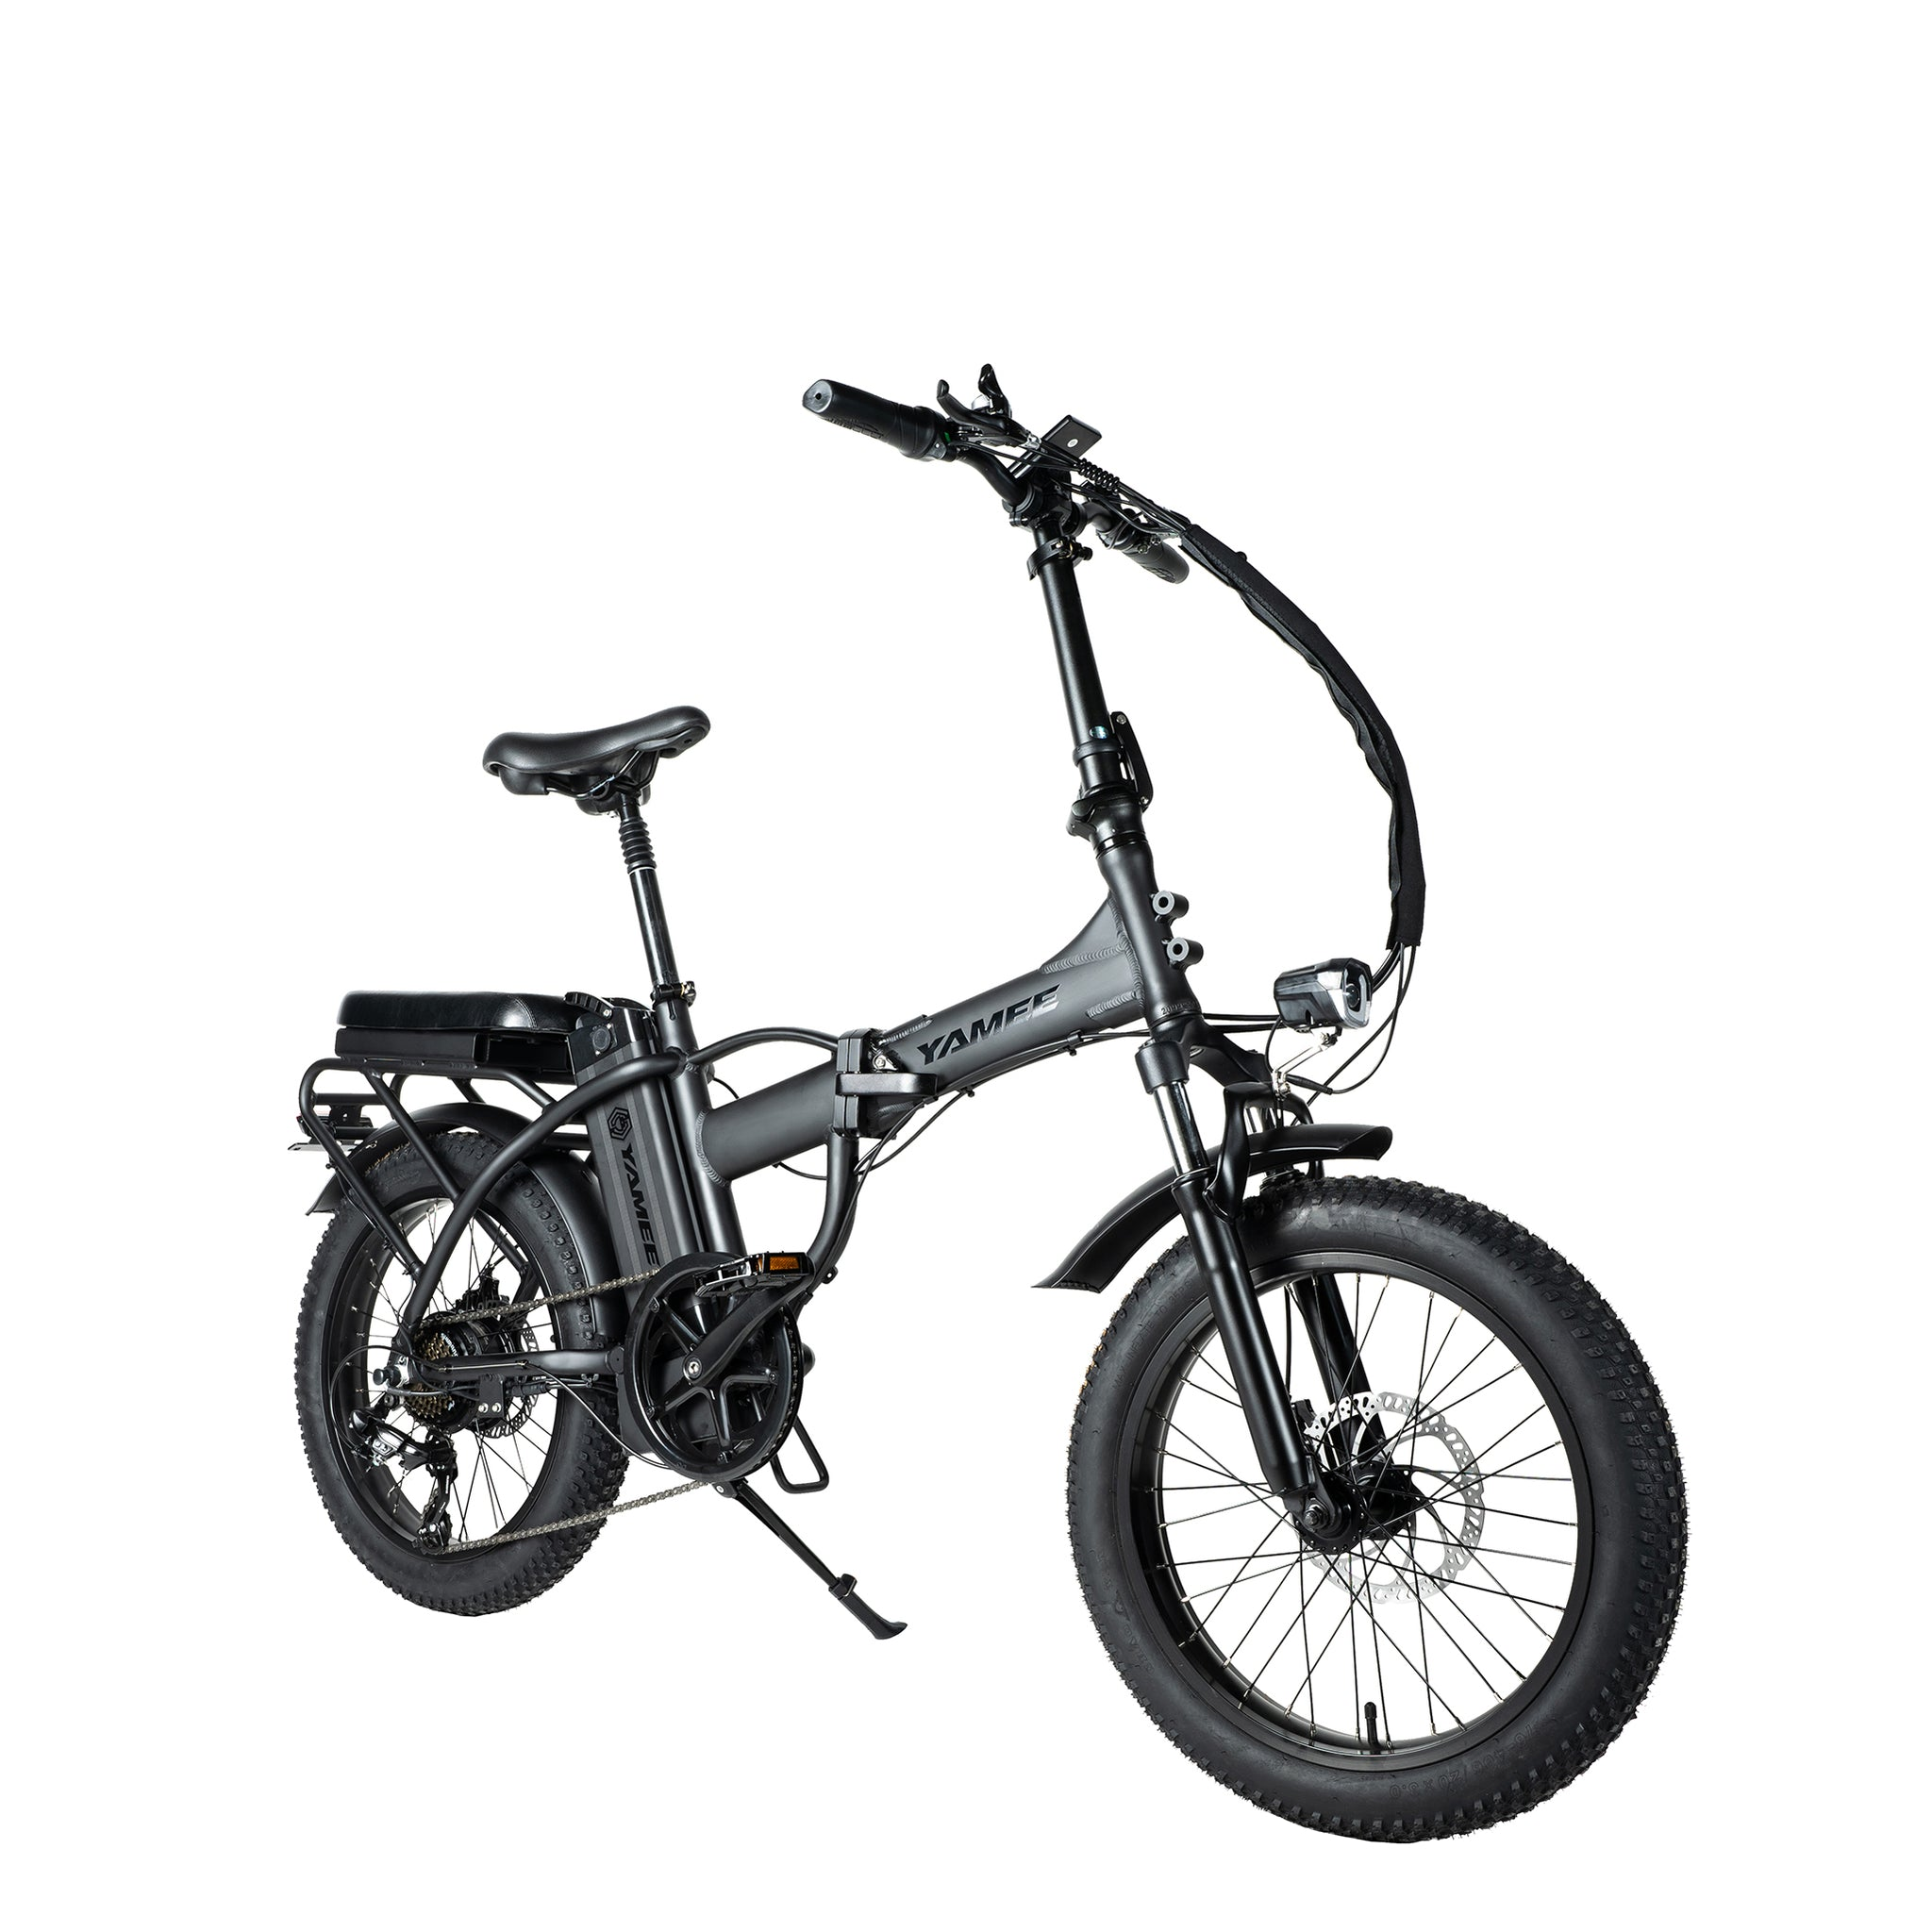 "LM-500 - Tandem Fat Tire Foldable Aluminum 20"" Electric Bike in 3 Colors"